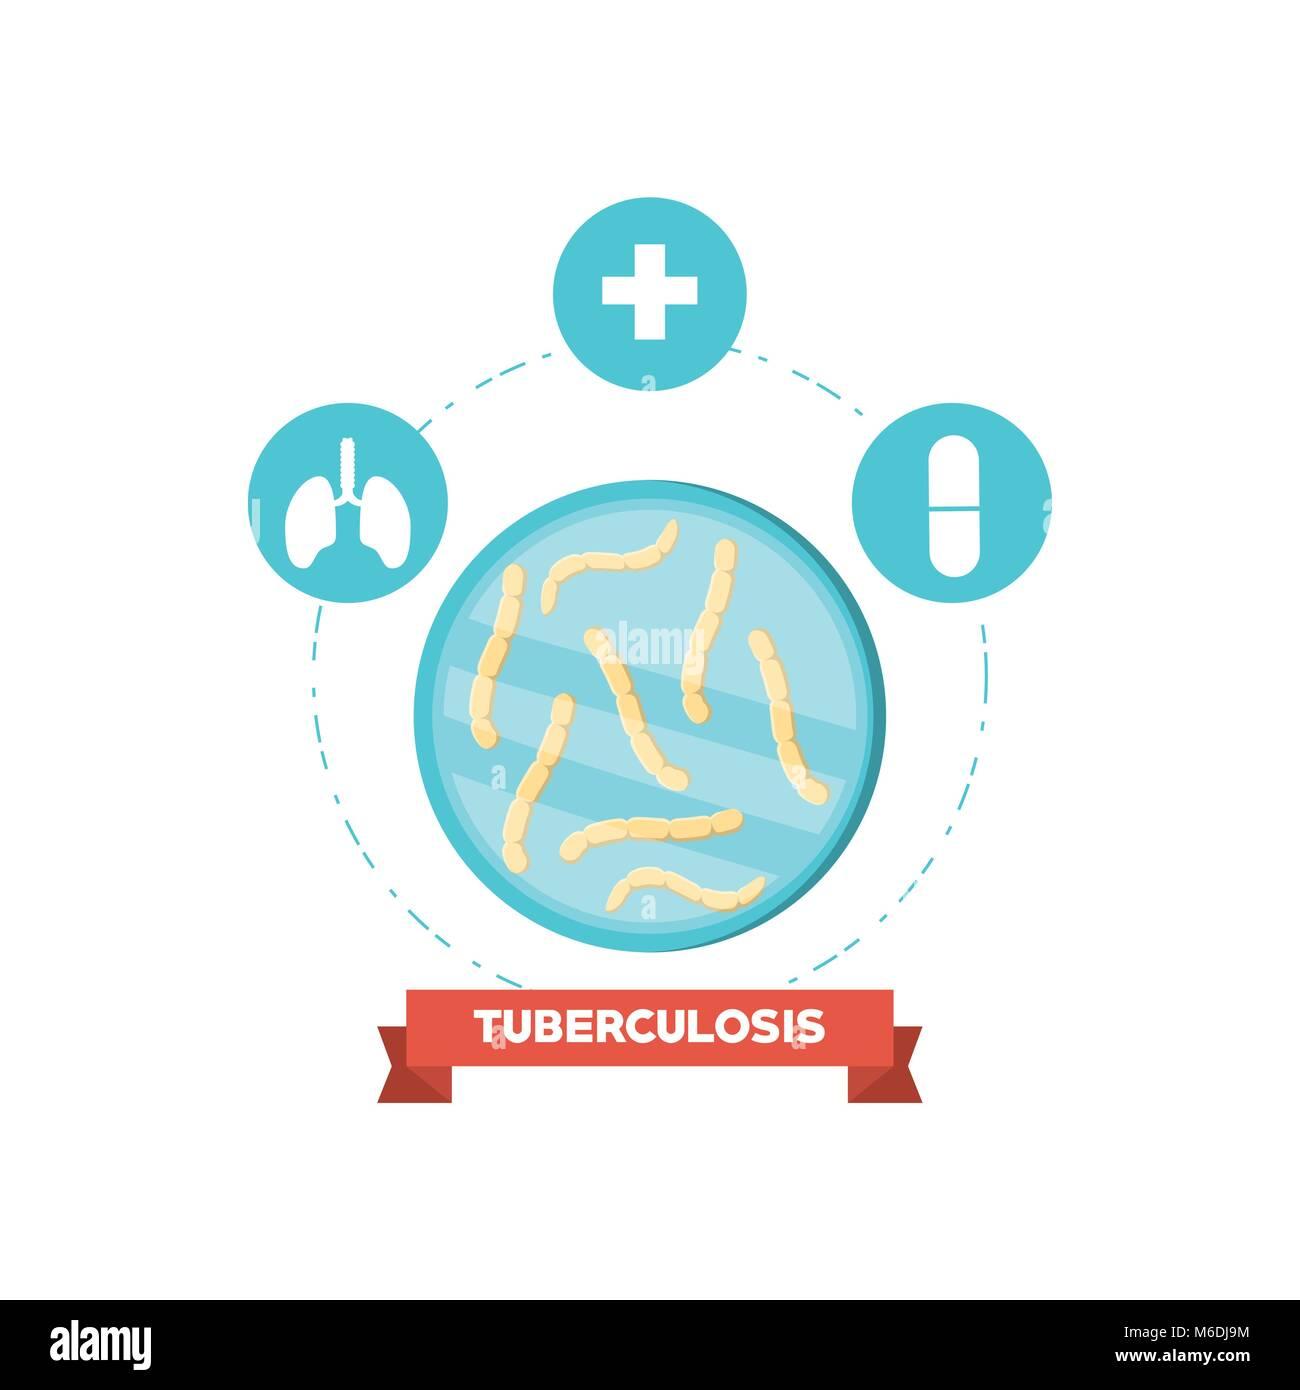 Tuberculosis bacteria and medication signs around over white background, colorful design vector illustration - Stock Image